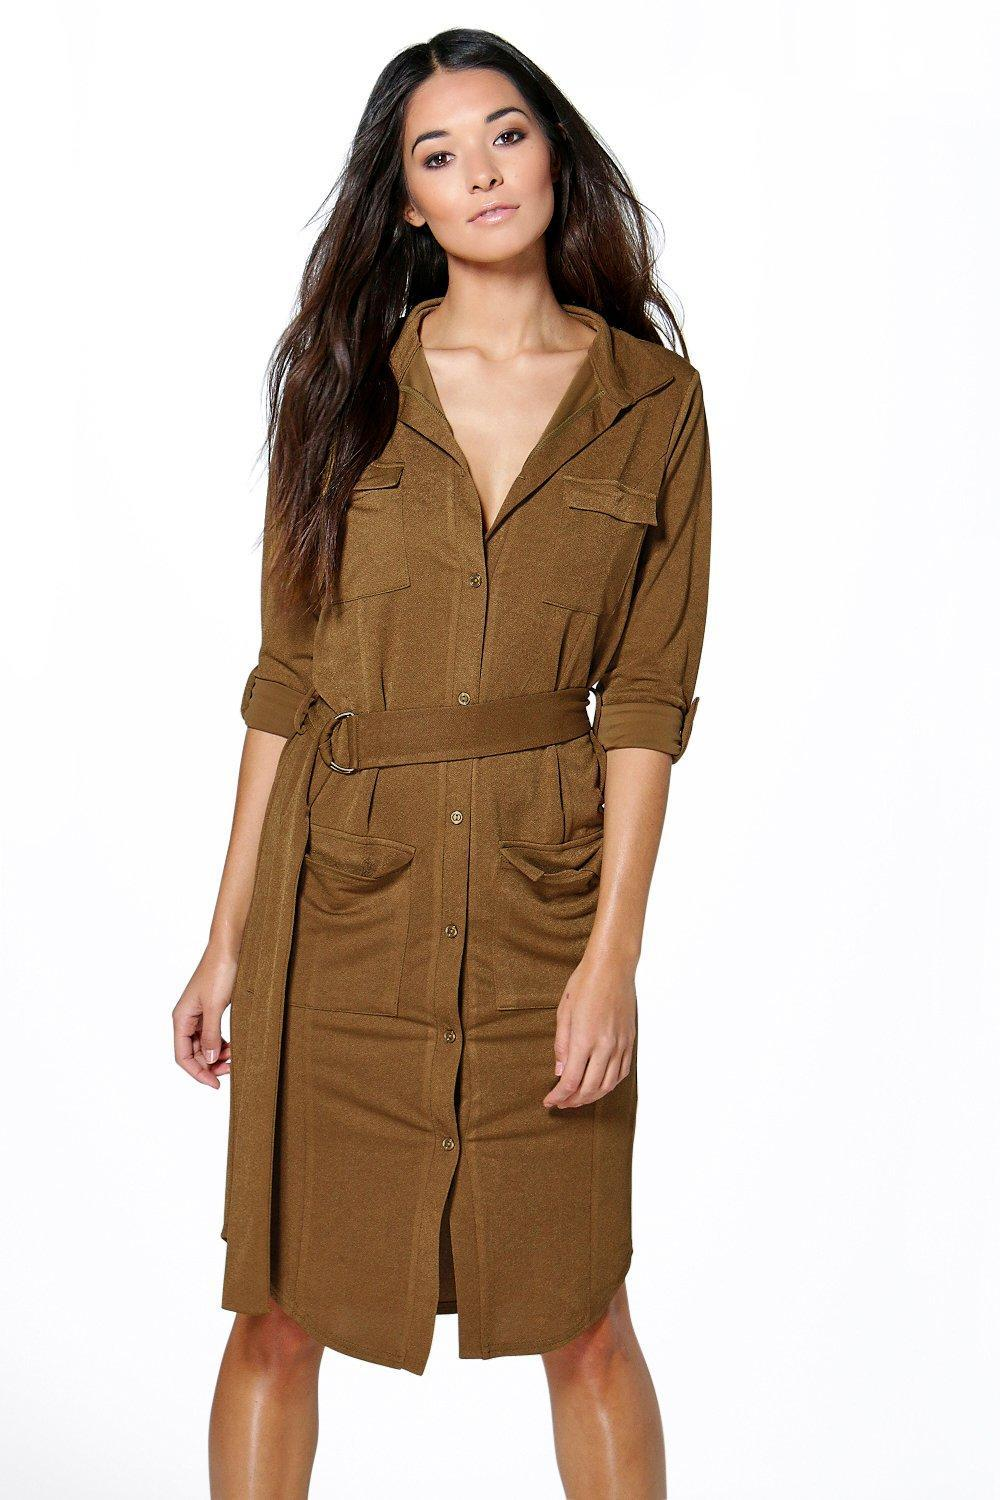 Tie Waist Pocket Shirt Dress Royal - style: shirt; neckline: low v-neck; pattern: plain; bust detail: pocket detail at bust; waist detail: belted waist/tie at waist/drawstring; predominant colour: khaki; occasions: evening, creative work; length: on the knee; fit: soft a-line; fibres: cotton - mix; sleeve length: half sleeve; sleeve style: standard; texture group: crepes; pattern type: fabric; pattern size: standard; season: s/s 2016; wardrobe: investment